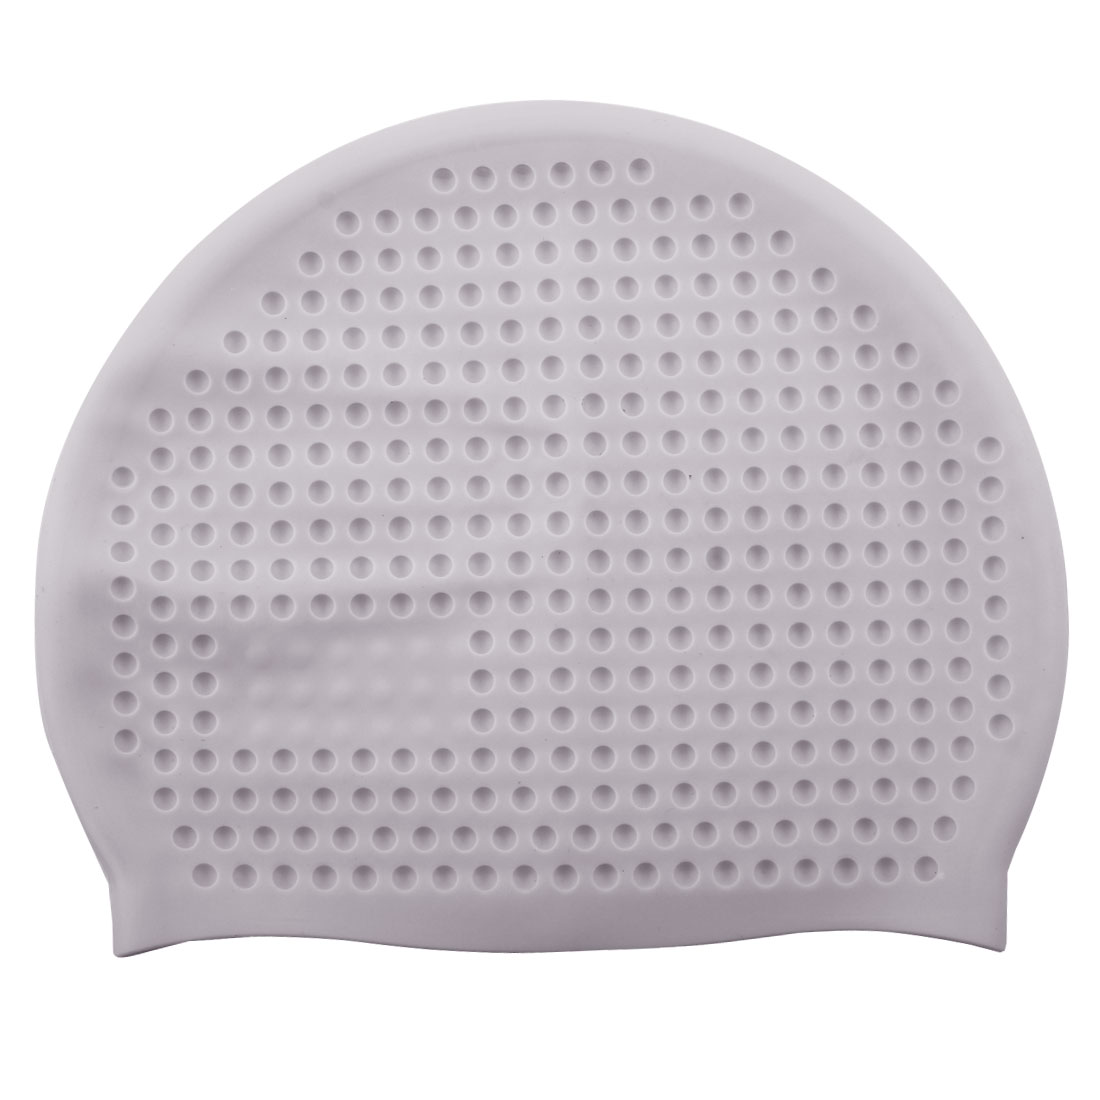 Adult Silicone Dome Shaped Water Resistant Elastic Swimming Cap Portable Bathing Hat Gray